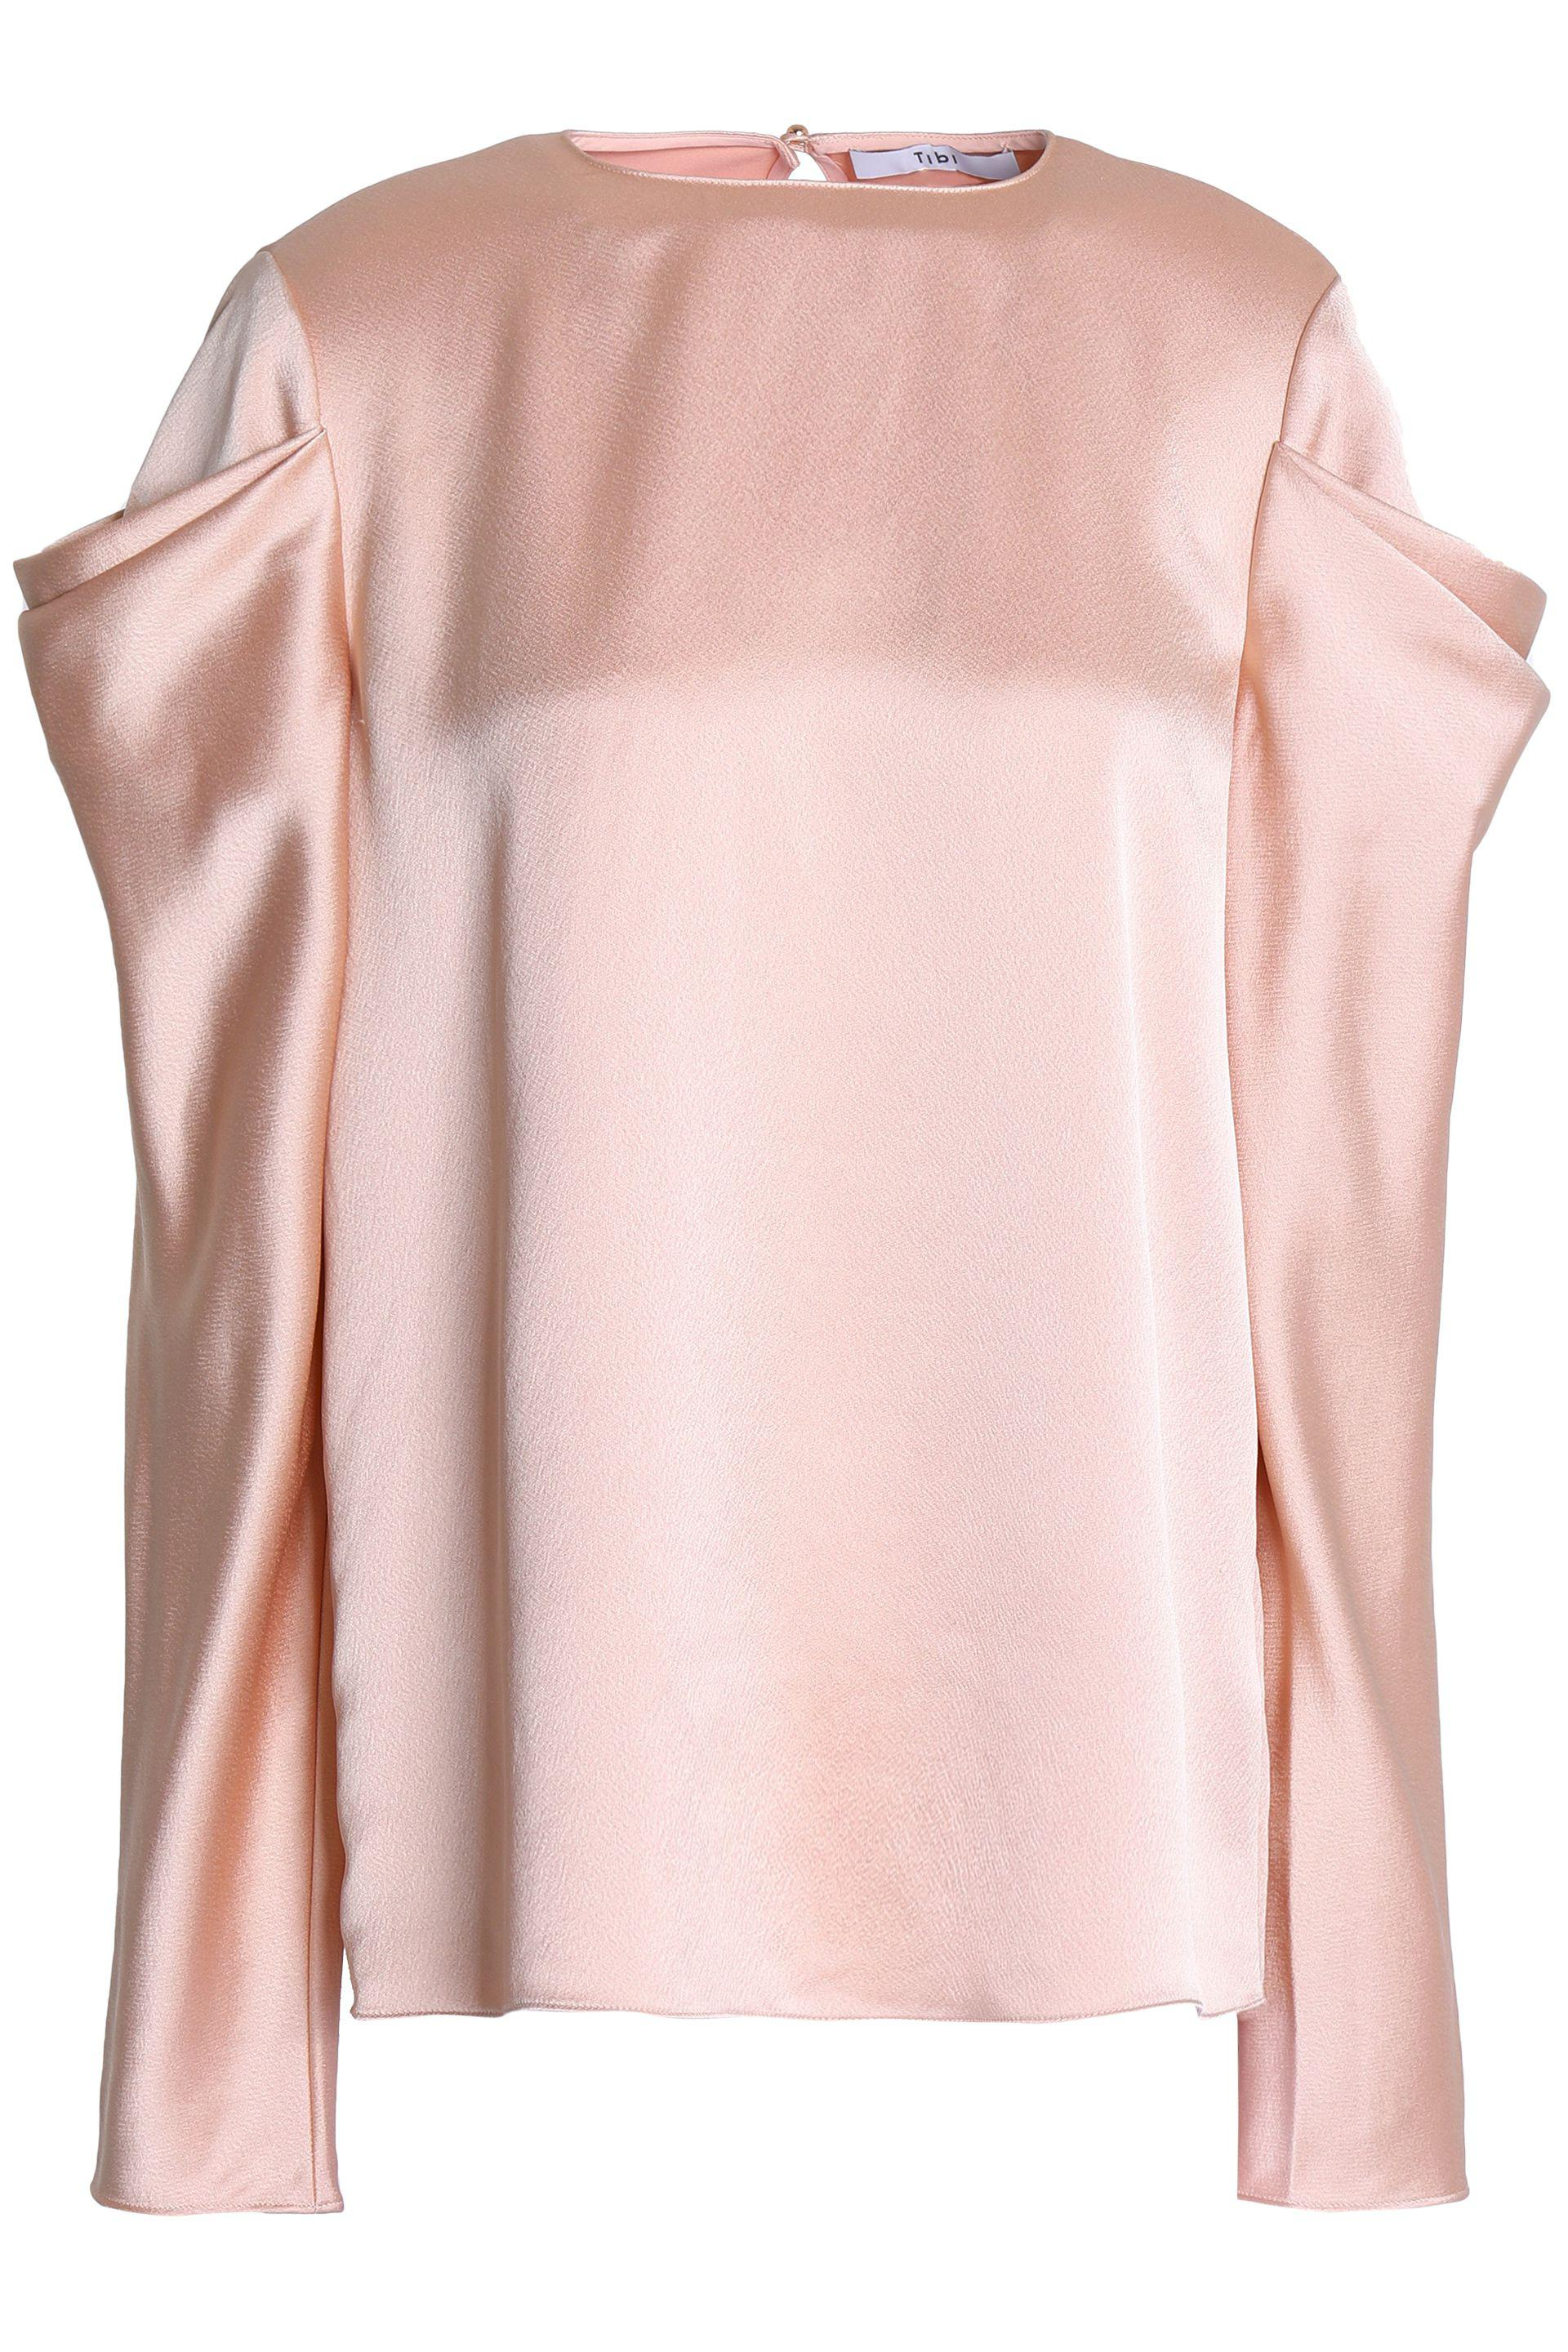 Tibi. Women's Draped Satin Top